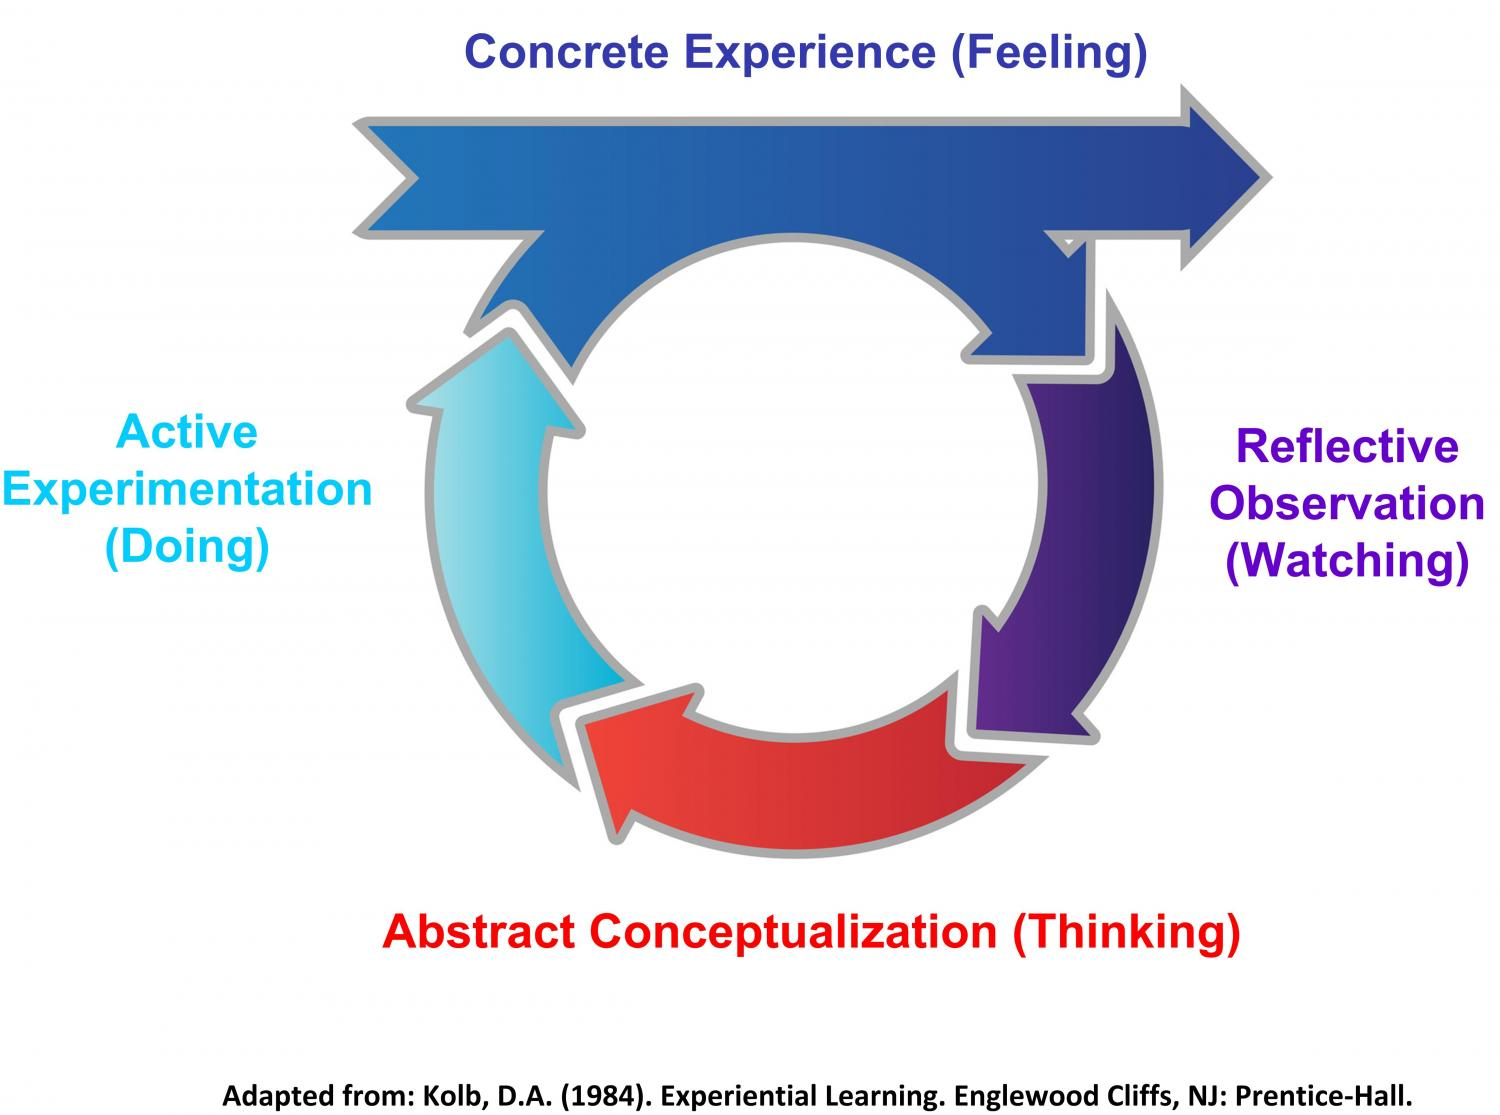 David Kolb's Model of Adult Learning